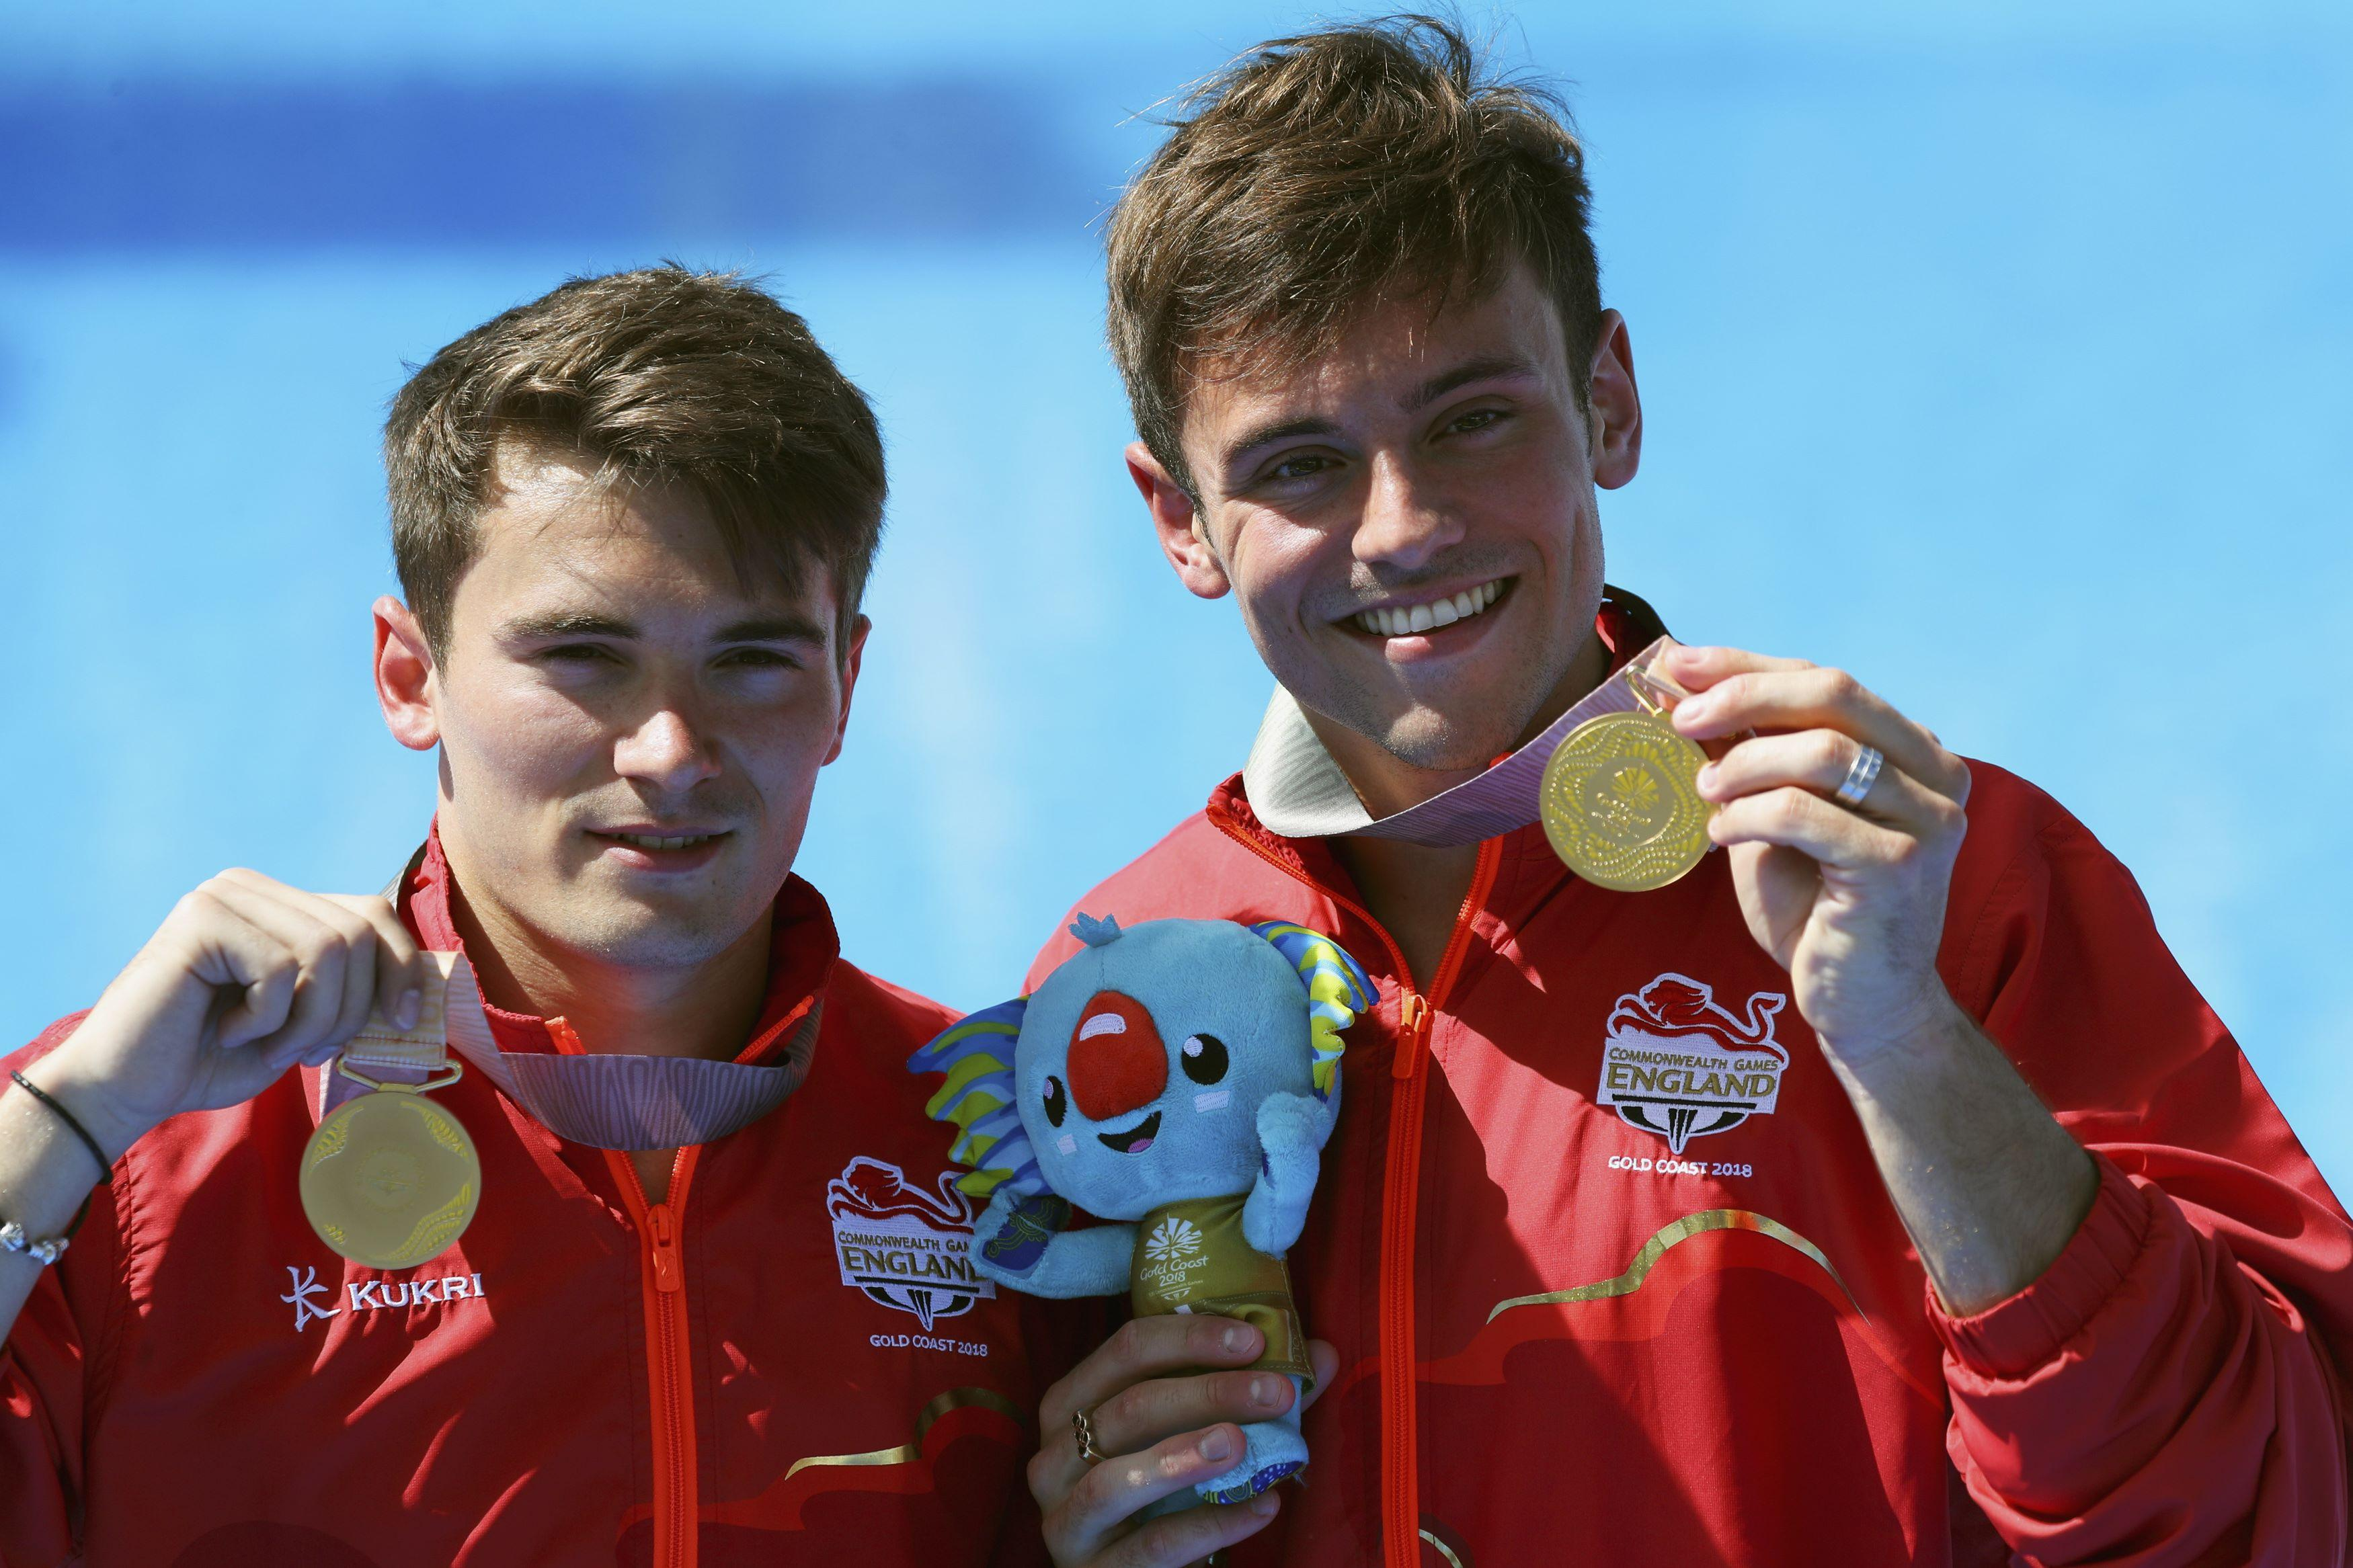 The pair brandish medals for the Men's Synchronised 10m Platform event